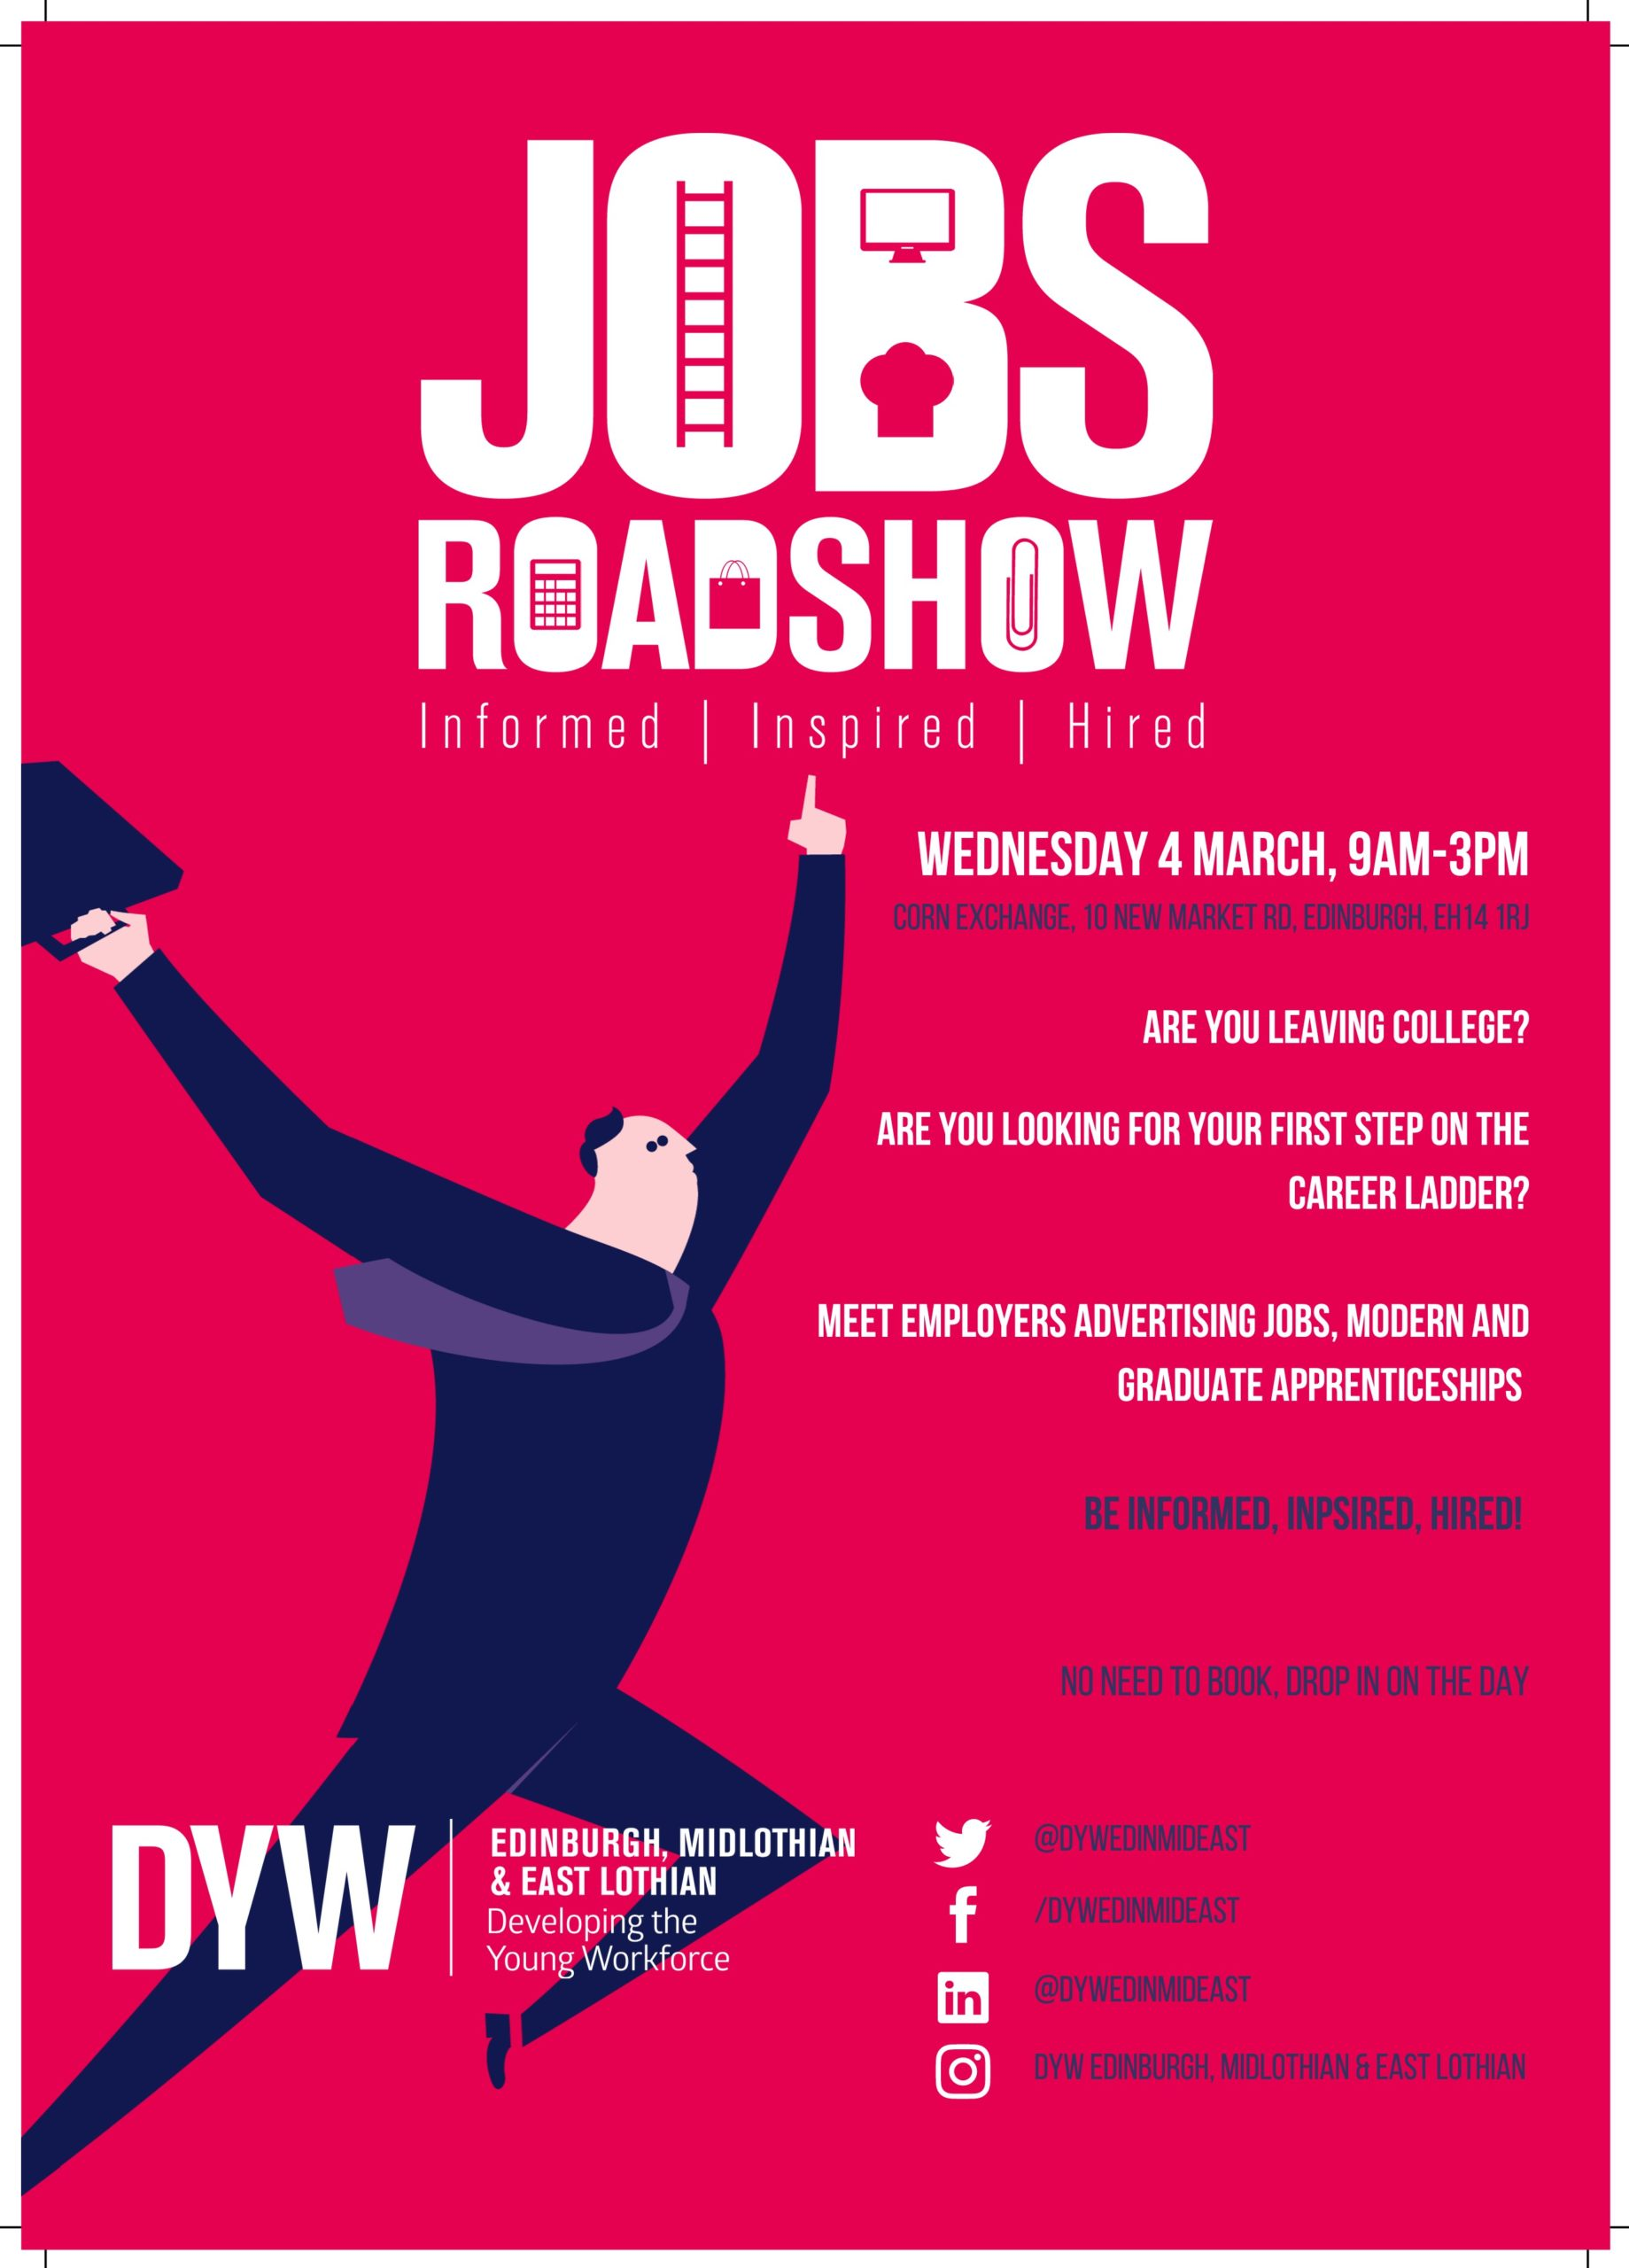 https://i2.wp.com/jobzone.edinburghcollege.ac.uk/wp-content/uploads/2020/02/Jobs-Roadshow-Poster-College-A4-PRINT-jpg-scaled.jpg?fit=1839%2C2560&ssl=1